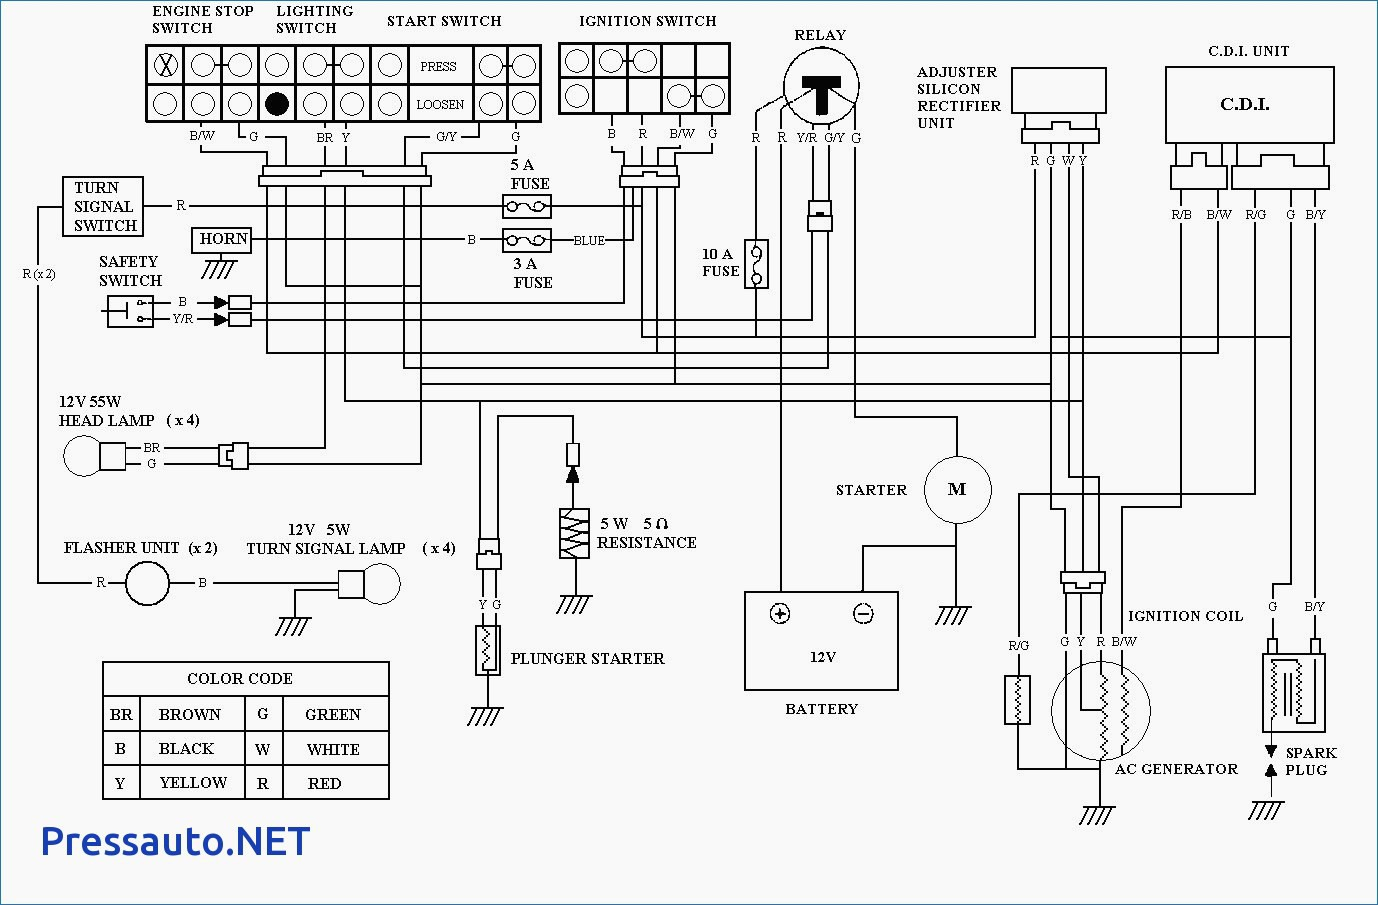 [NRIO_4796]   43D658 5 Wire Wiring Diagram 125cc | Wiring Resources | Wiring Diagram For Yahama Ytm 225dx |  | Wiring Resources